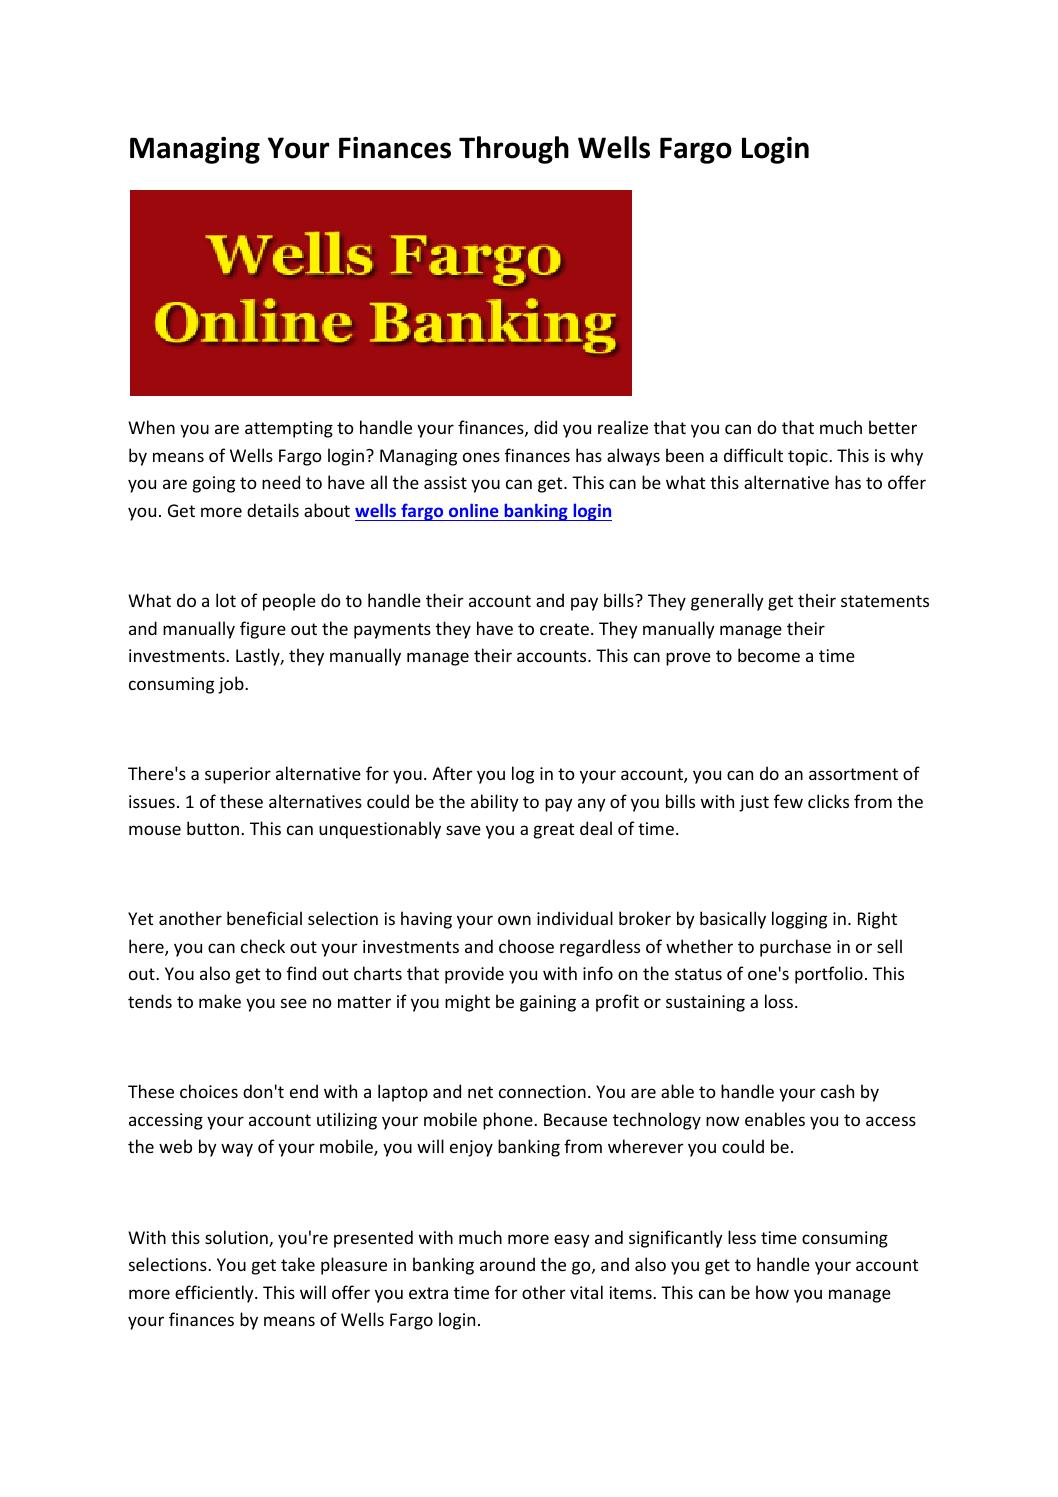 wells fargo online banking login by Kain Black - issuu